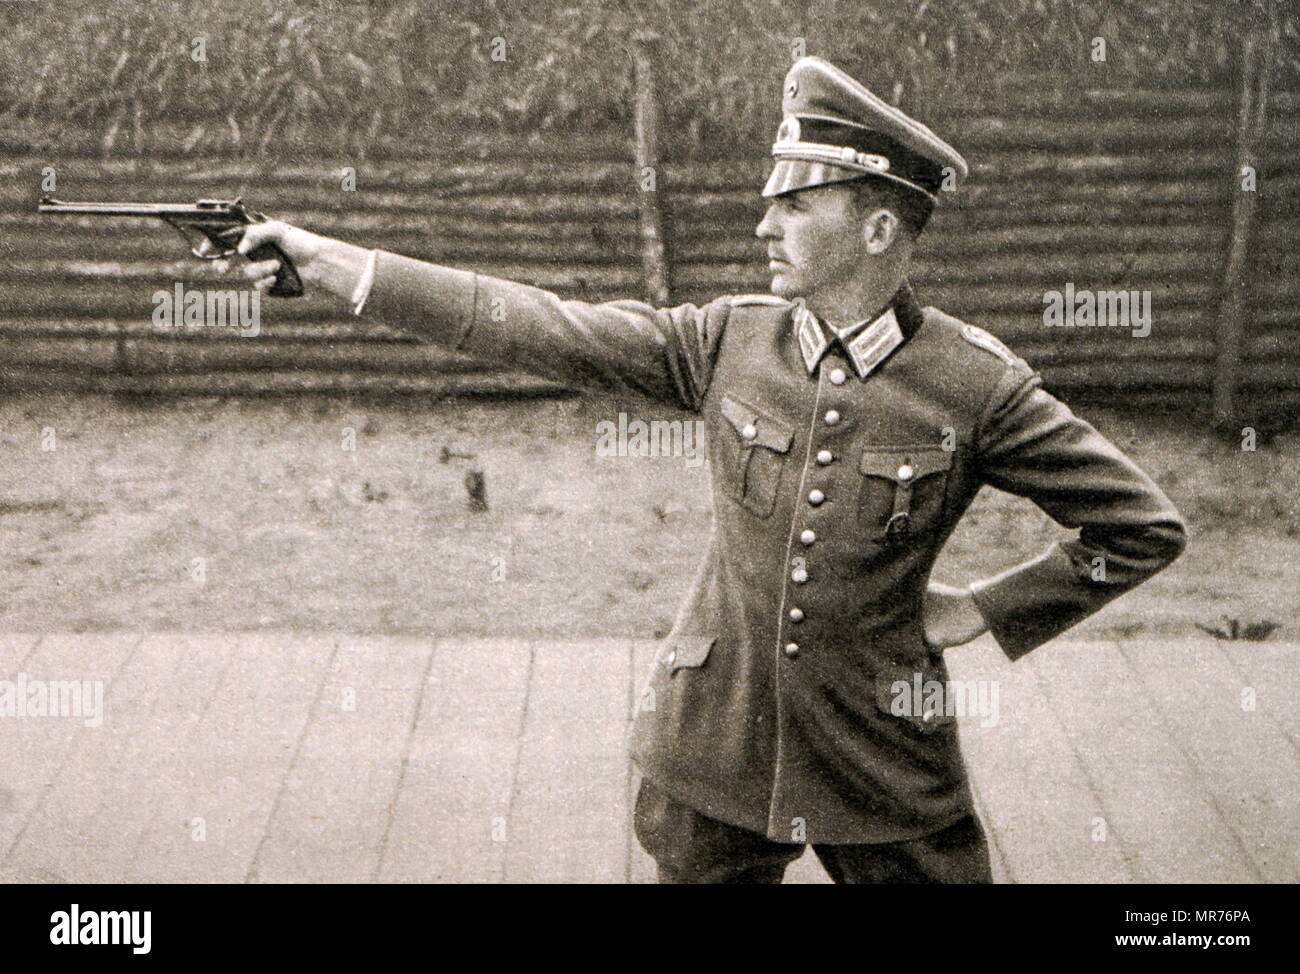 8e16854152efd Photograph of Heinrich Hax (1900 - 1969) at the 1932 Olympic games ...